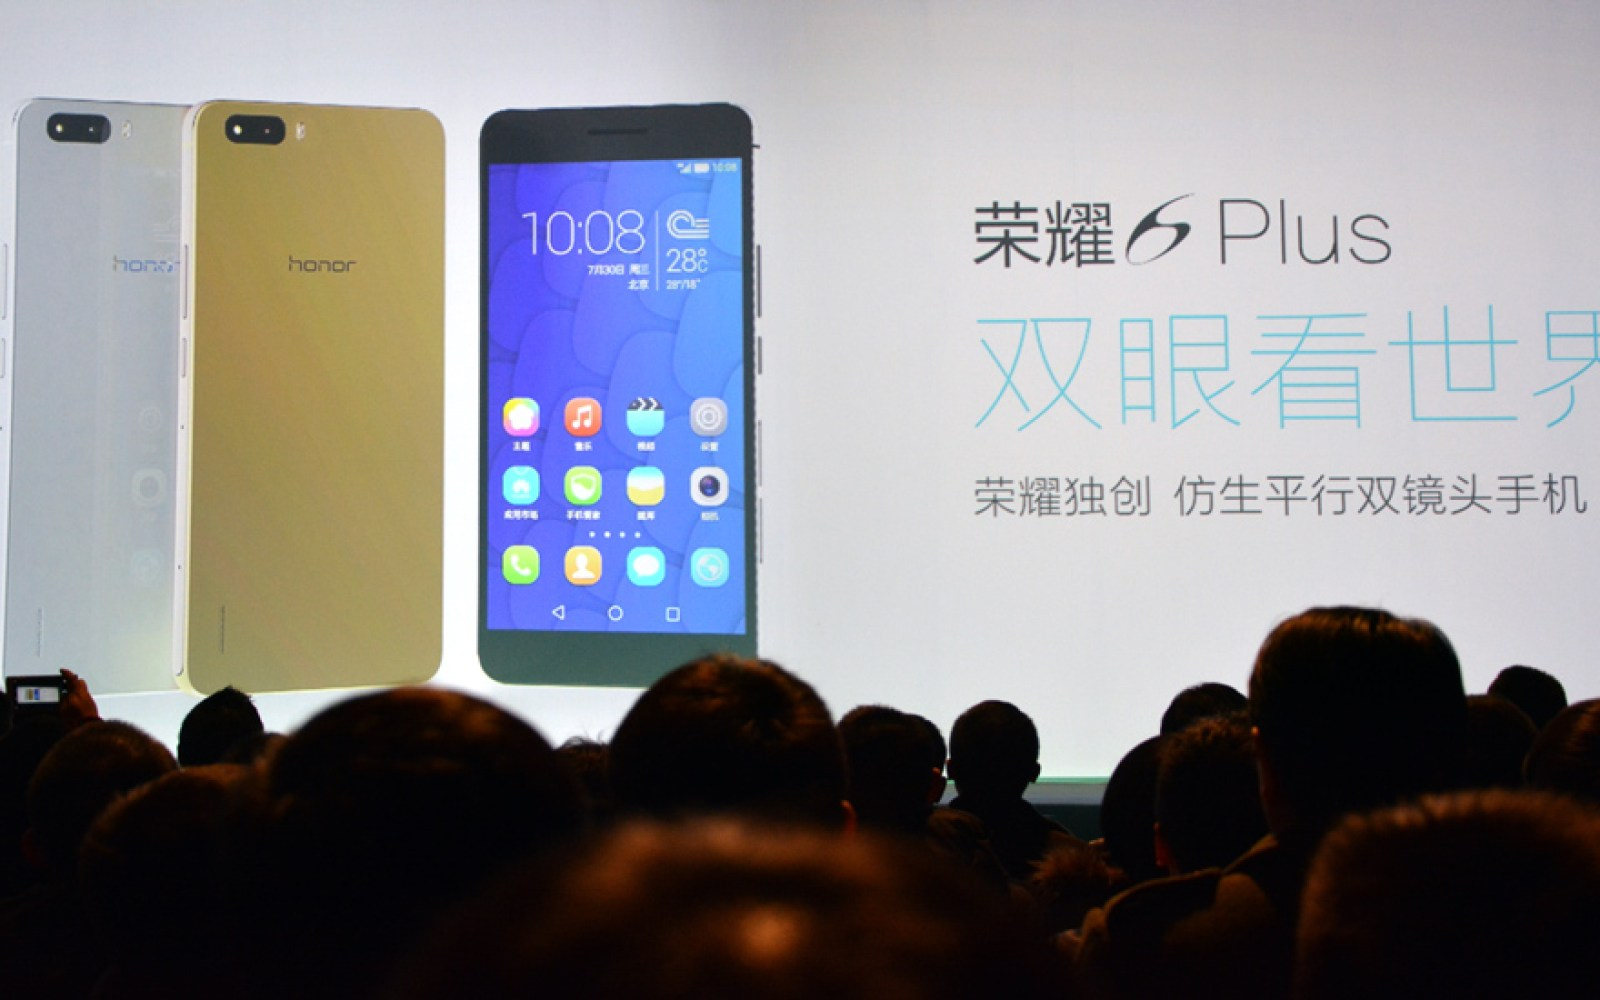 Honor among thieves? Huawei calls its new smartphone the 6 Plus